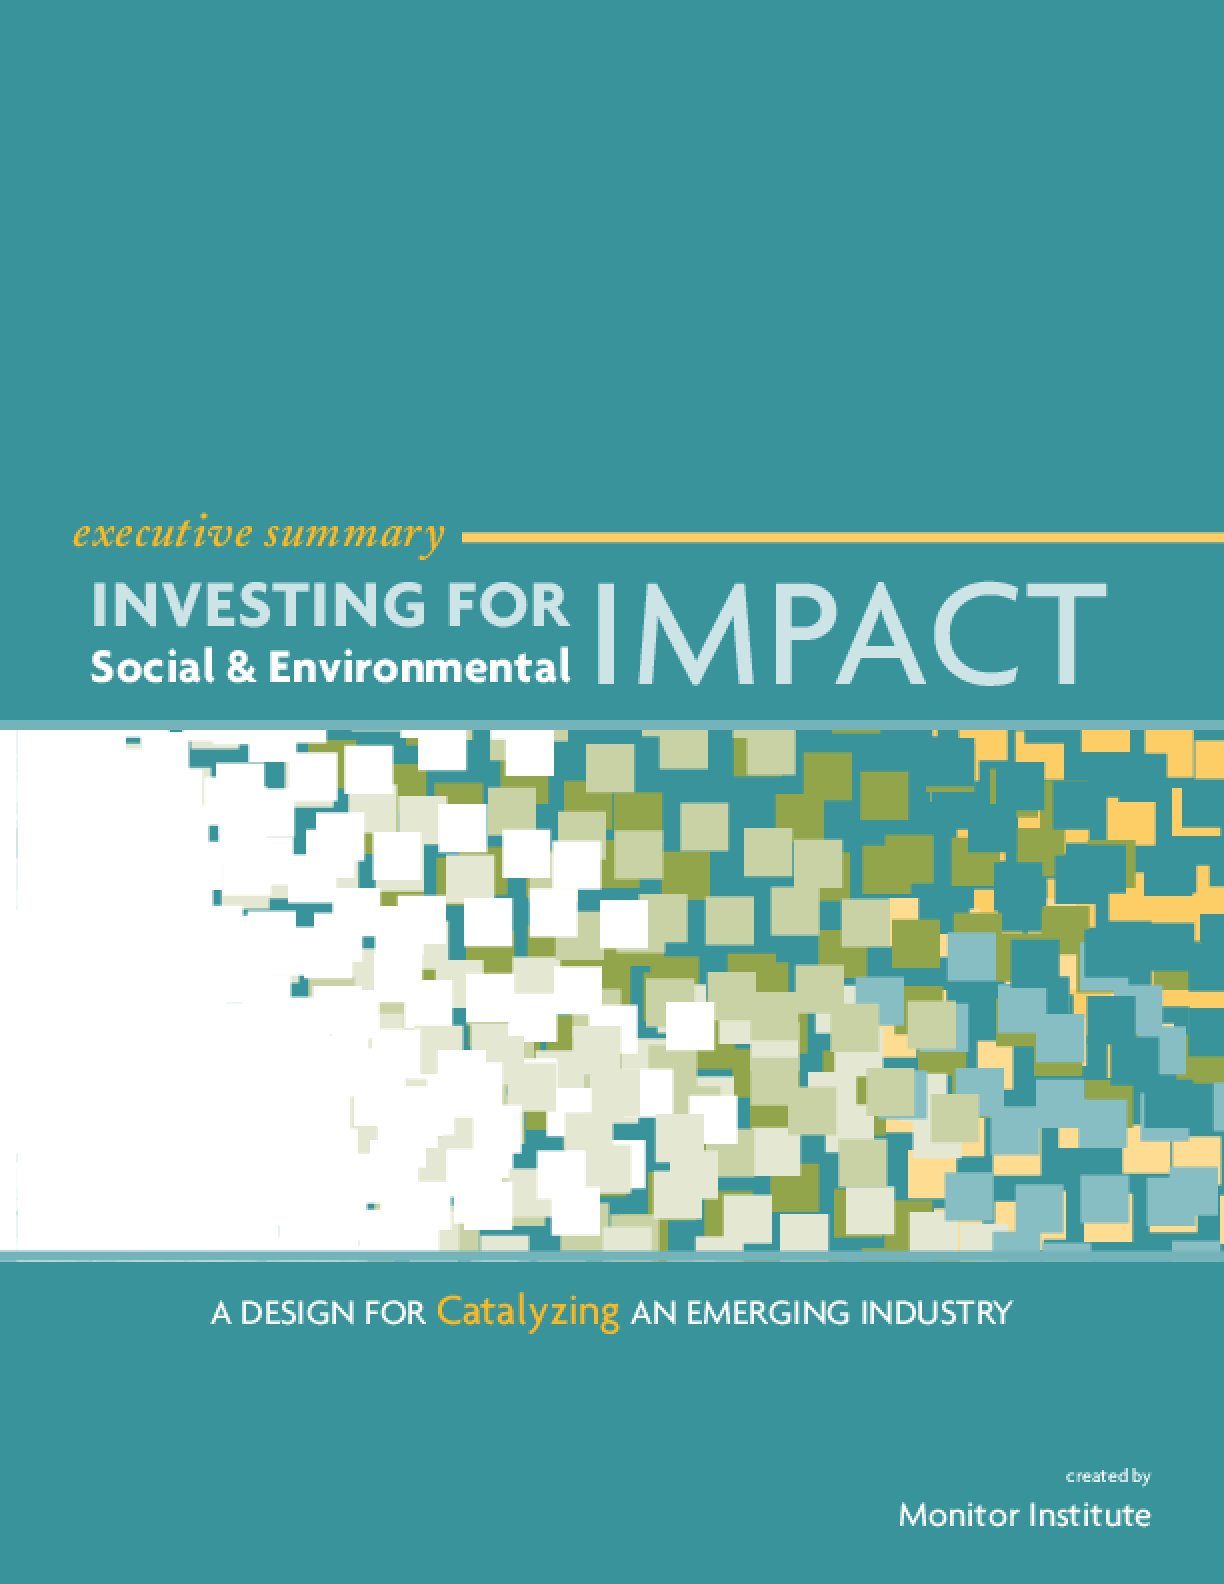 Investing for Social and Environmental Impact: A Design for Catalyzing an Emerging Industry, Executive Summary